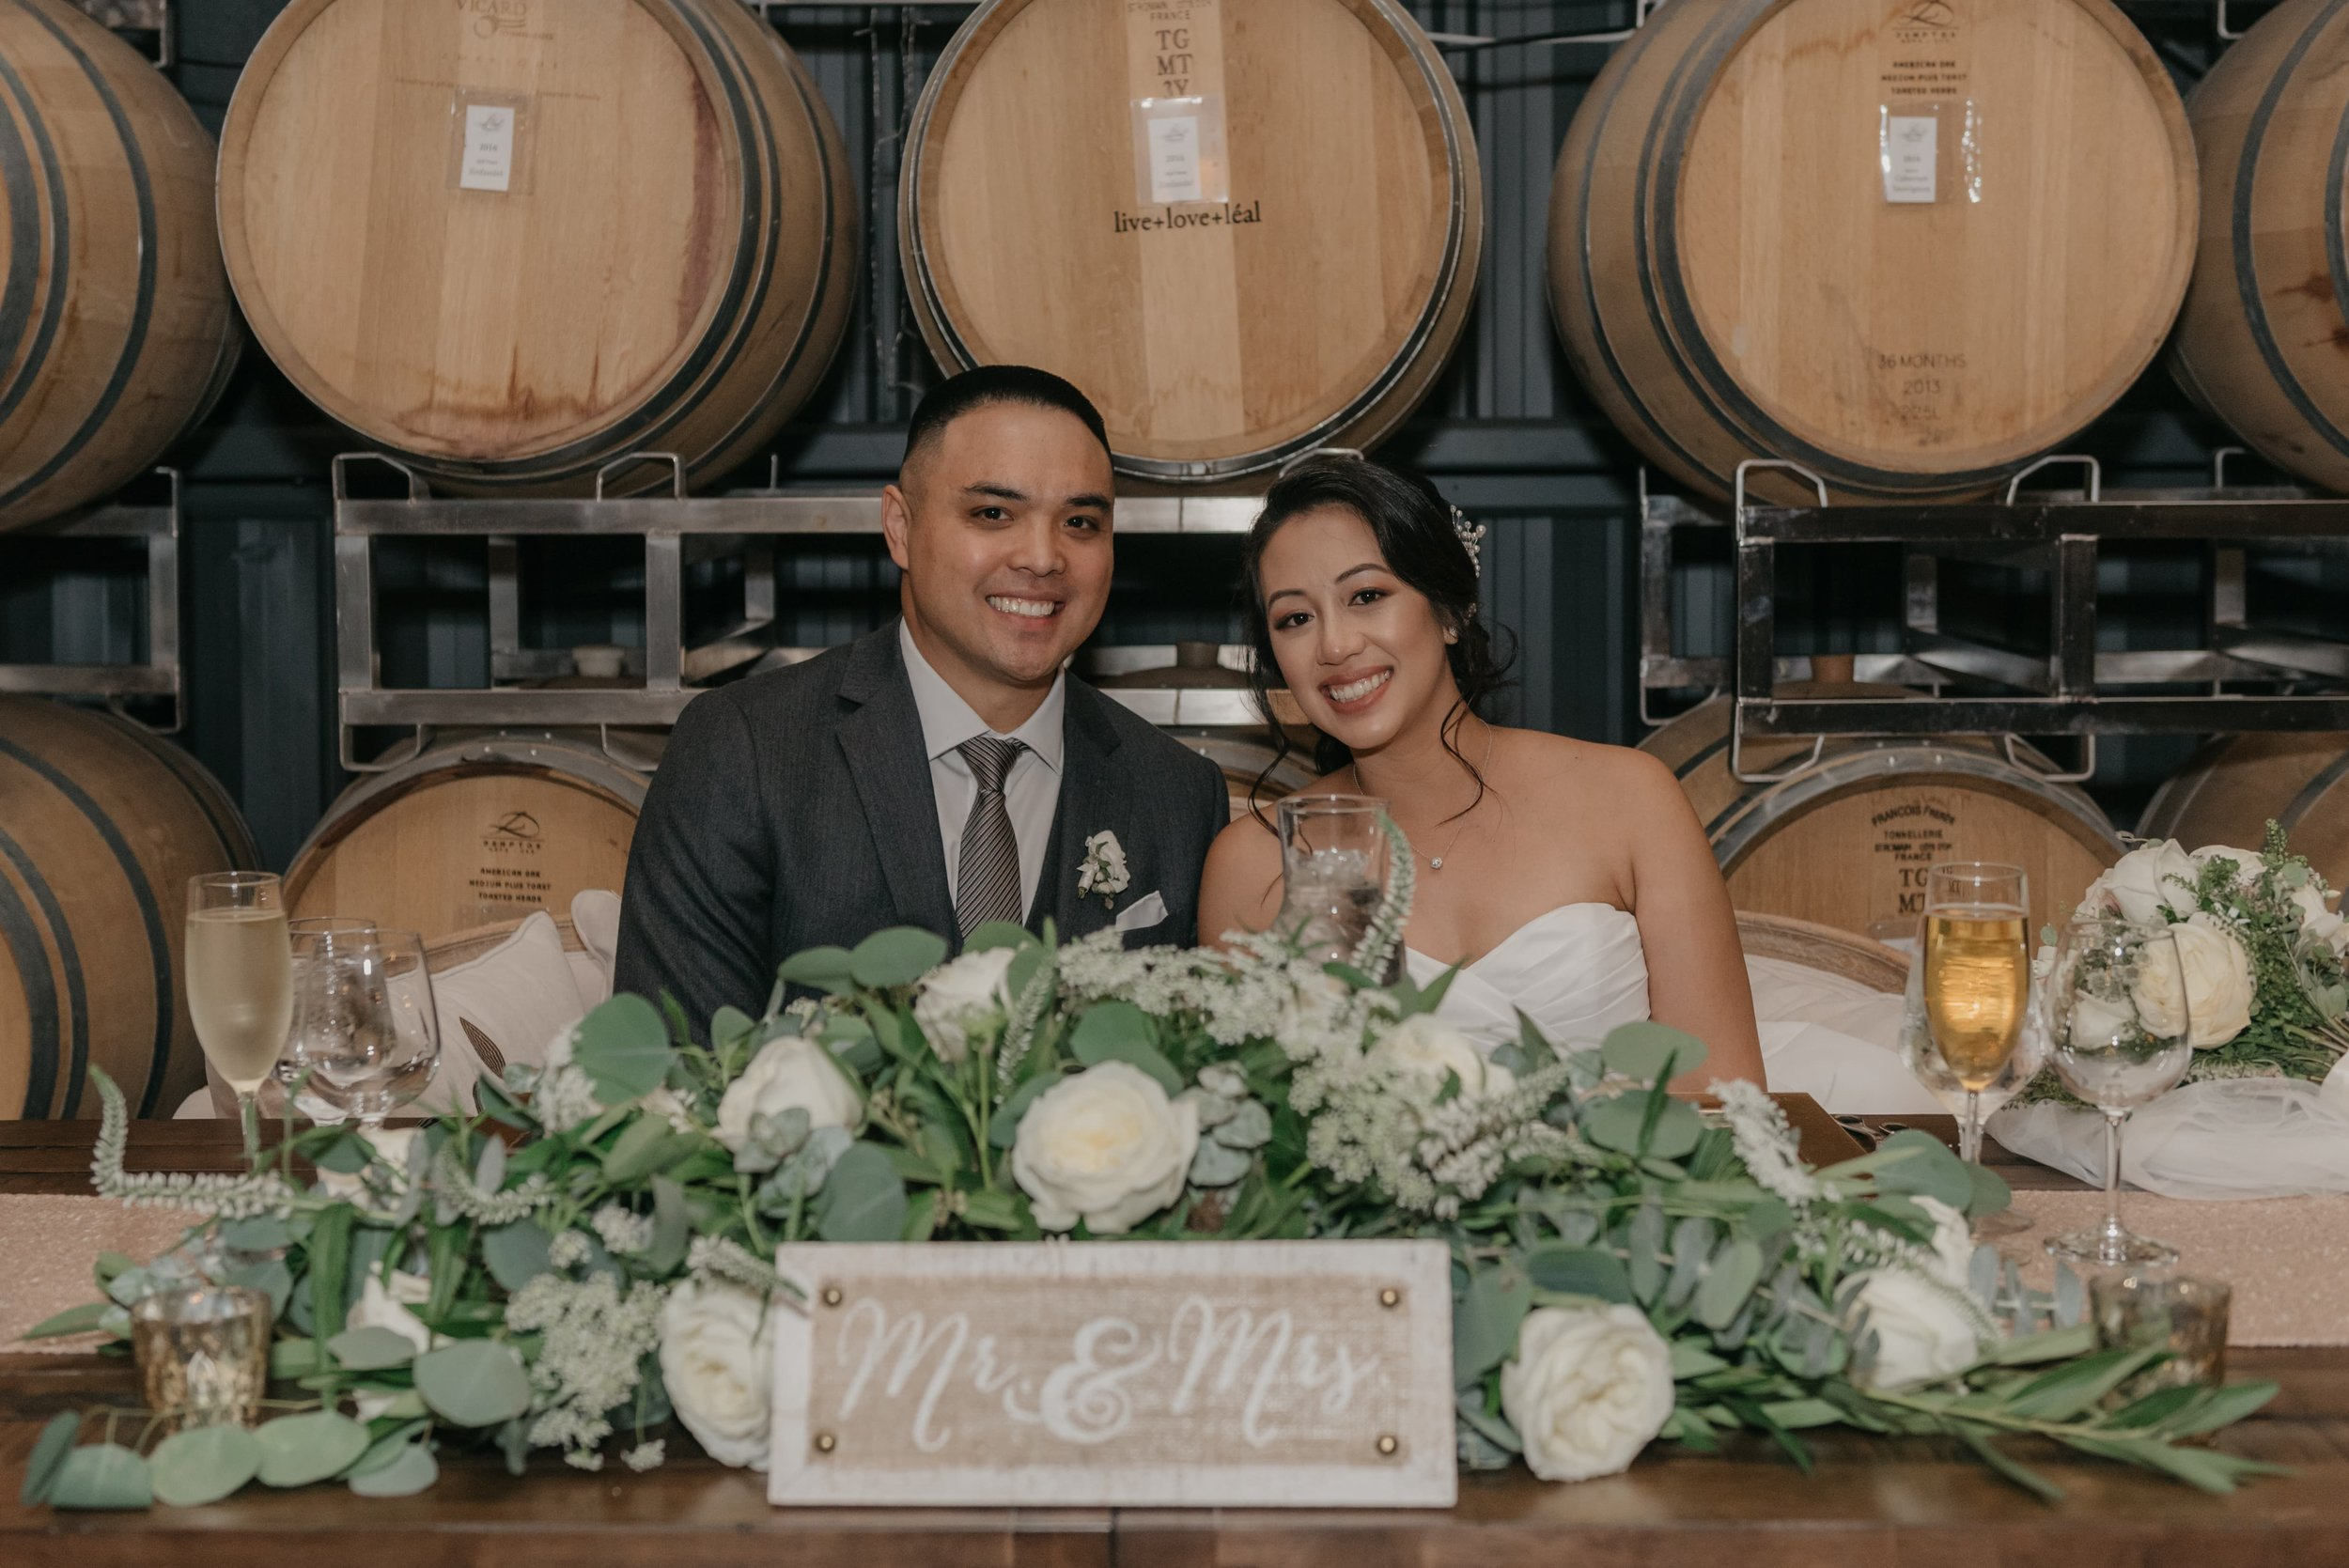 Married couple sitting at wedding reception table in front of wine barrels.